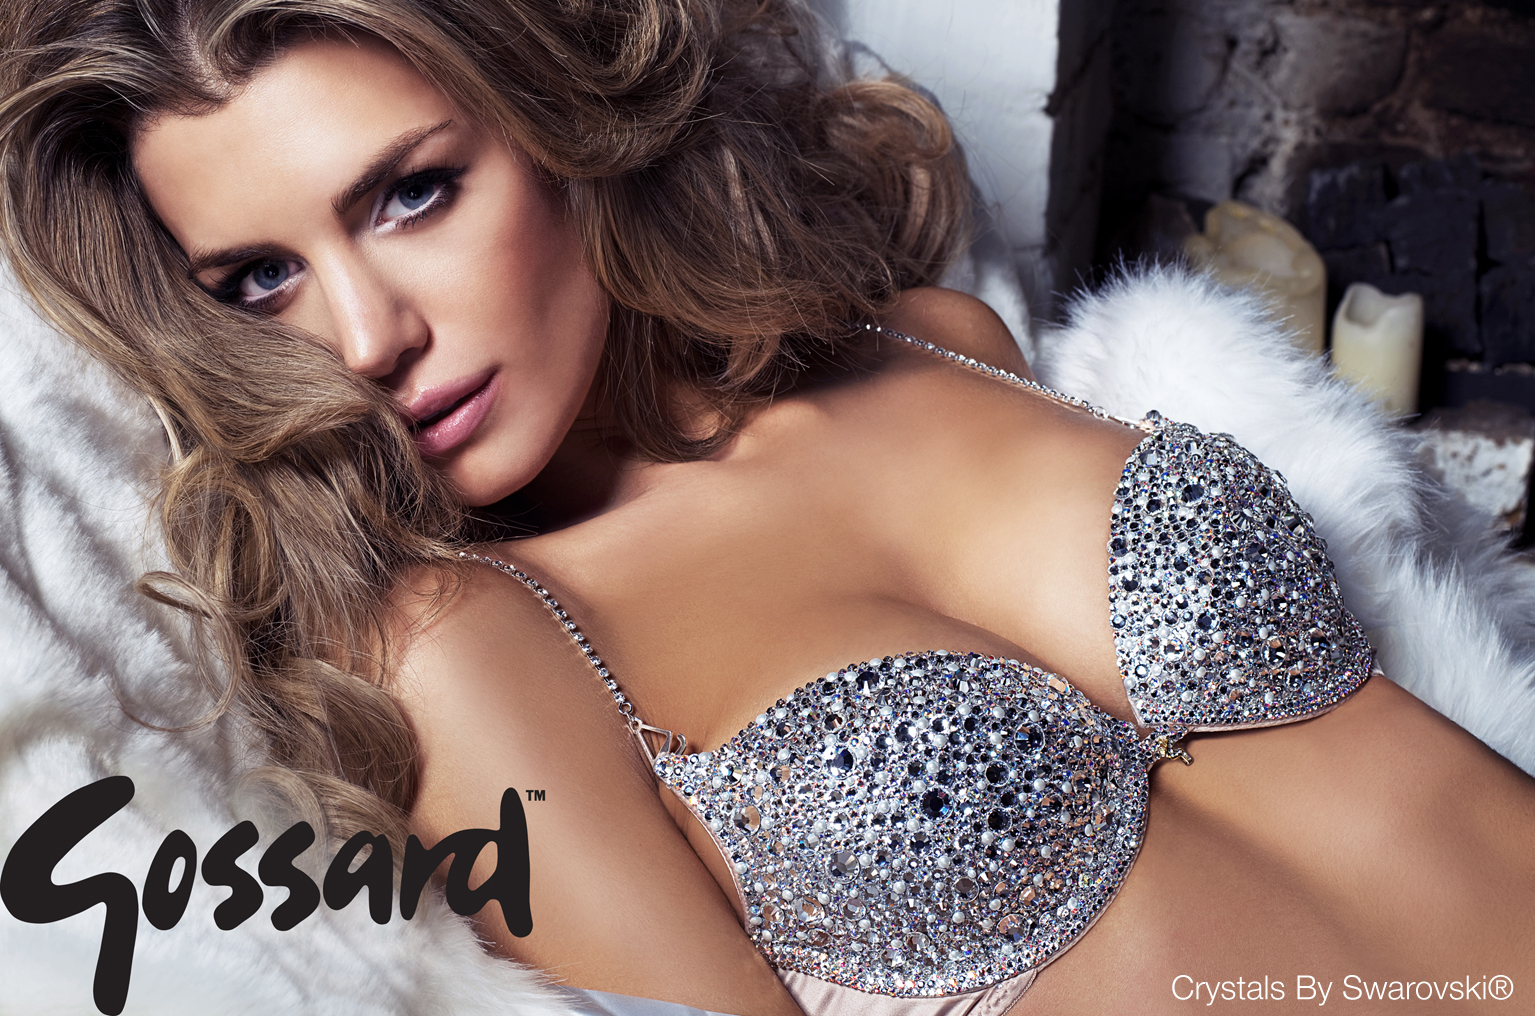 47203585e2 Elle Liberachi wearing our stunning bra in diamonds and pearl crystals by  Swarovski®. The most glamourous sparkly underwear ever made